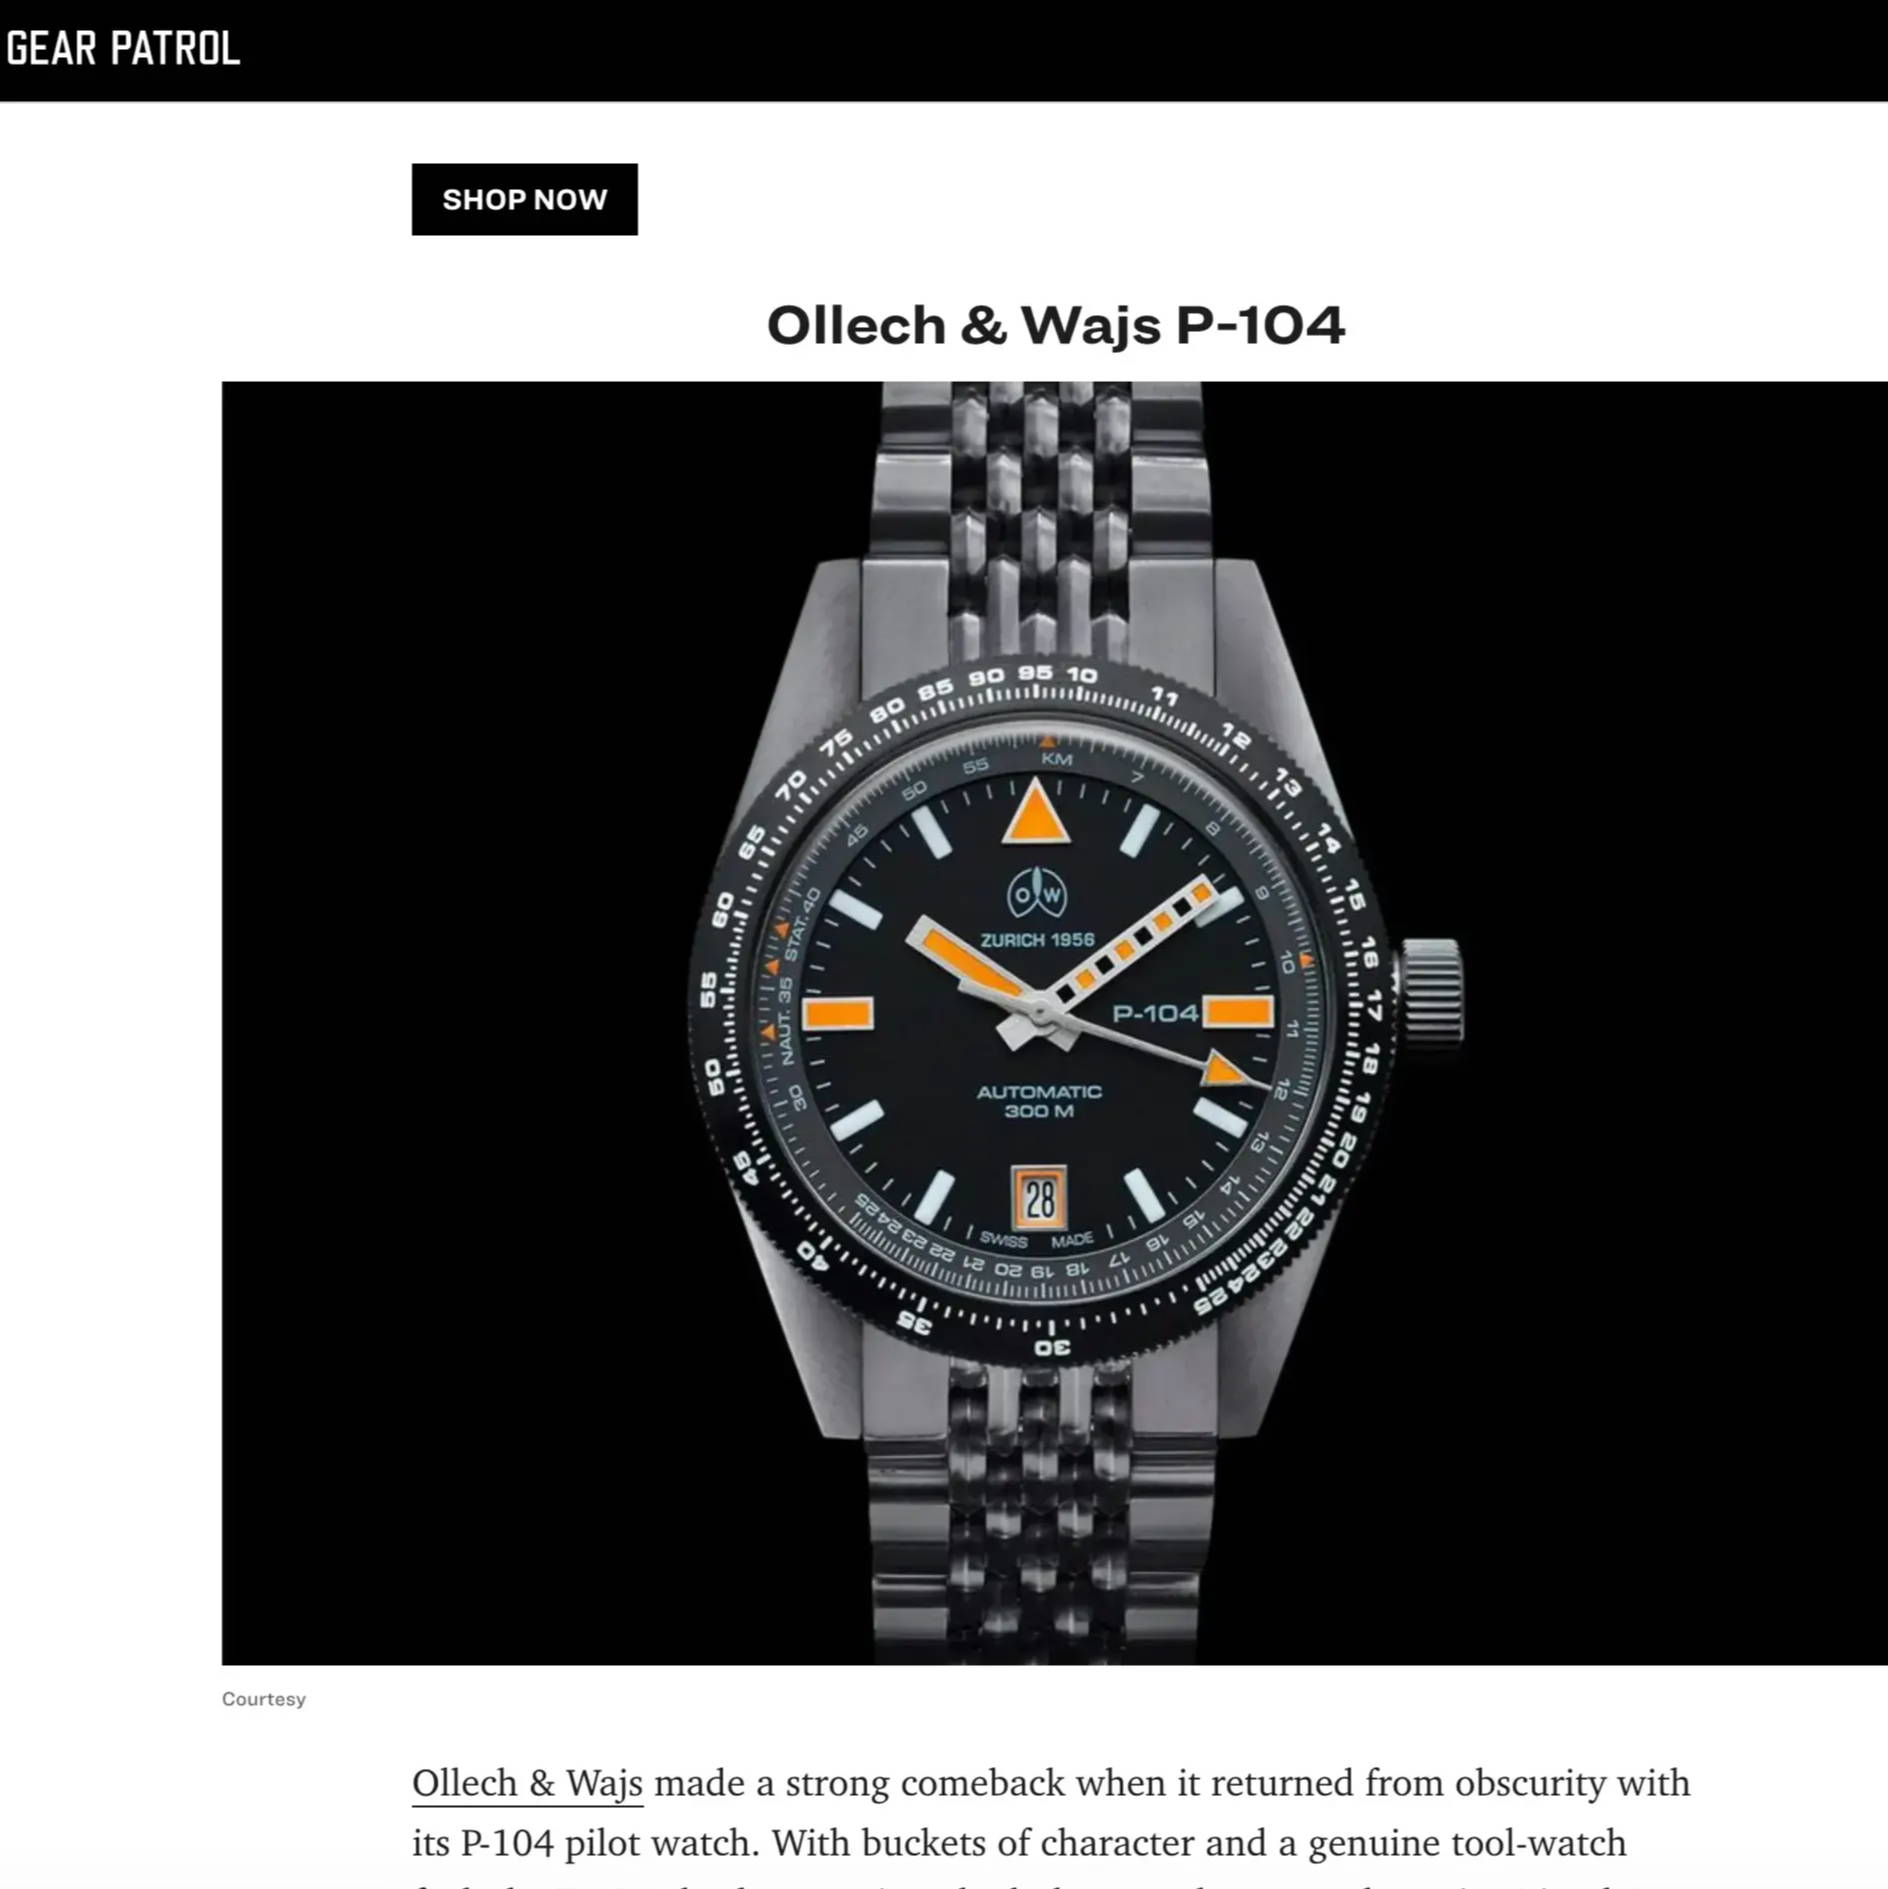 Ollech and wajs gear patrol The Best Pilot's Watches Available Right Now